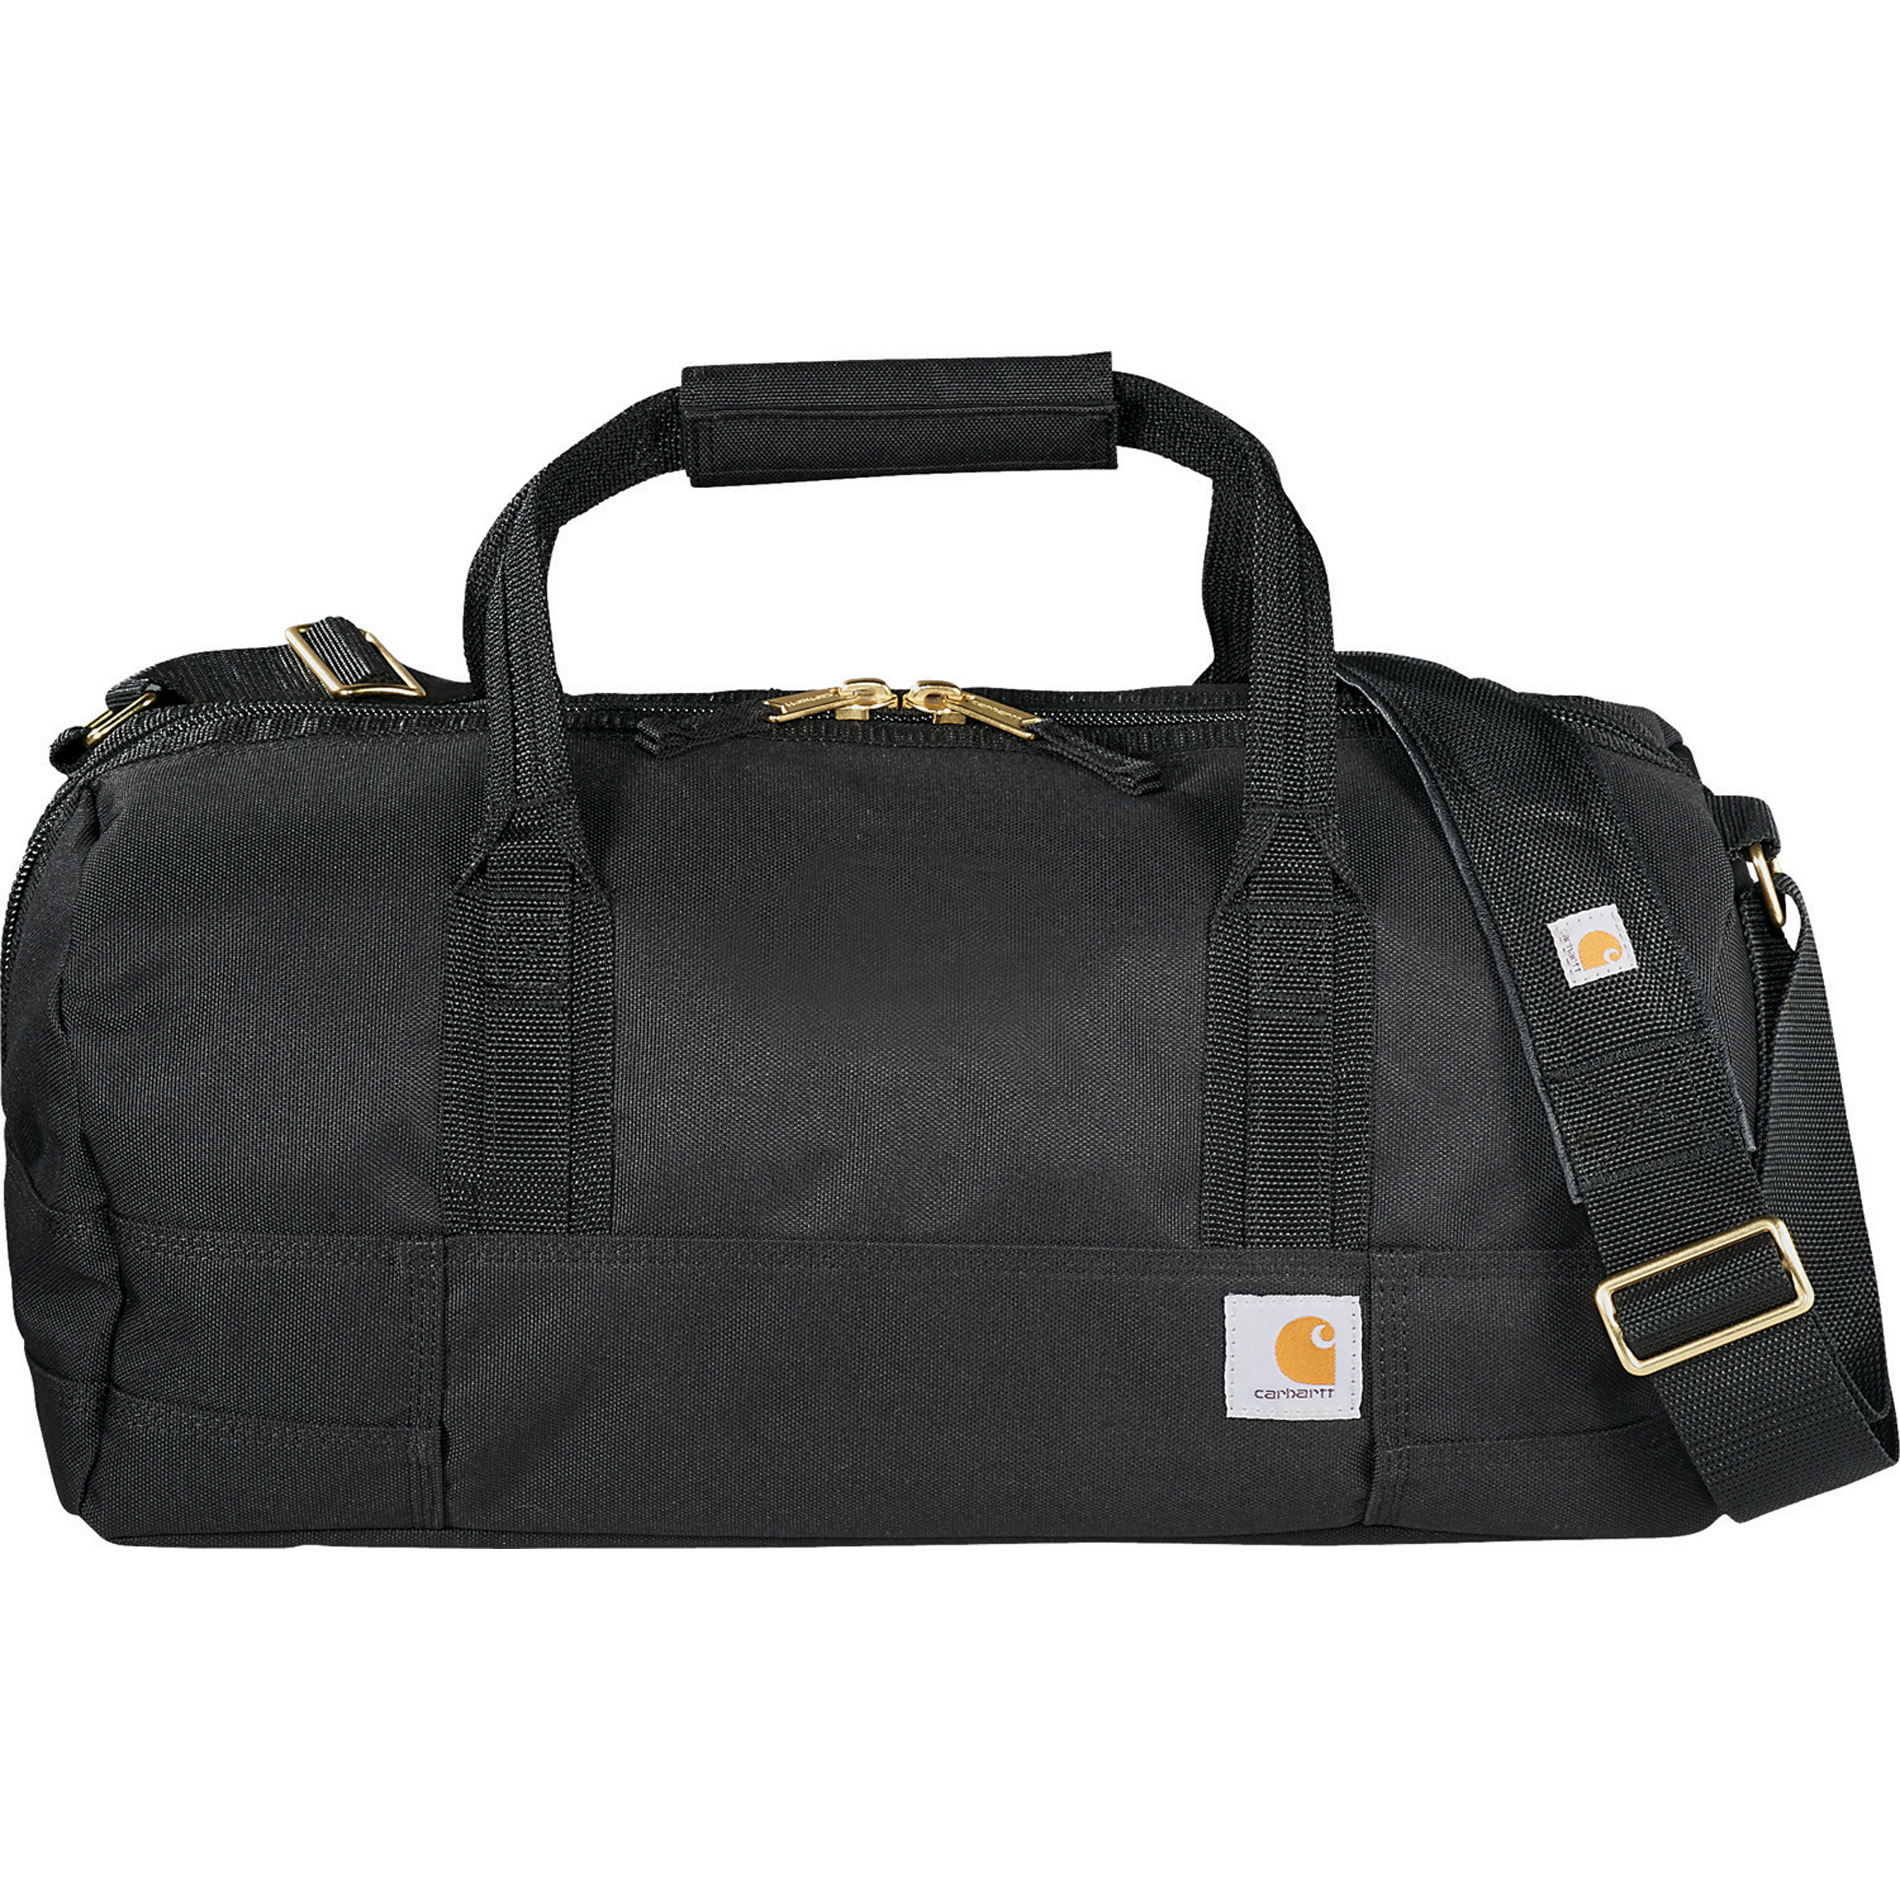 "Carhartt 1889-20 - Signature 20"" Work Duffel Bag"